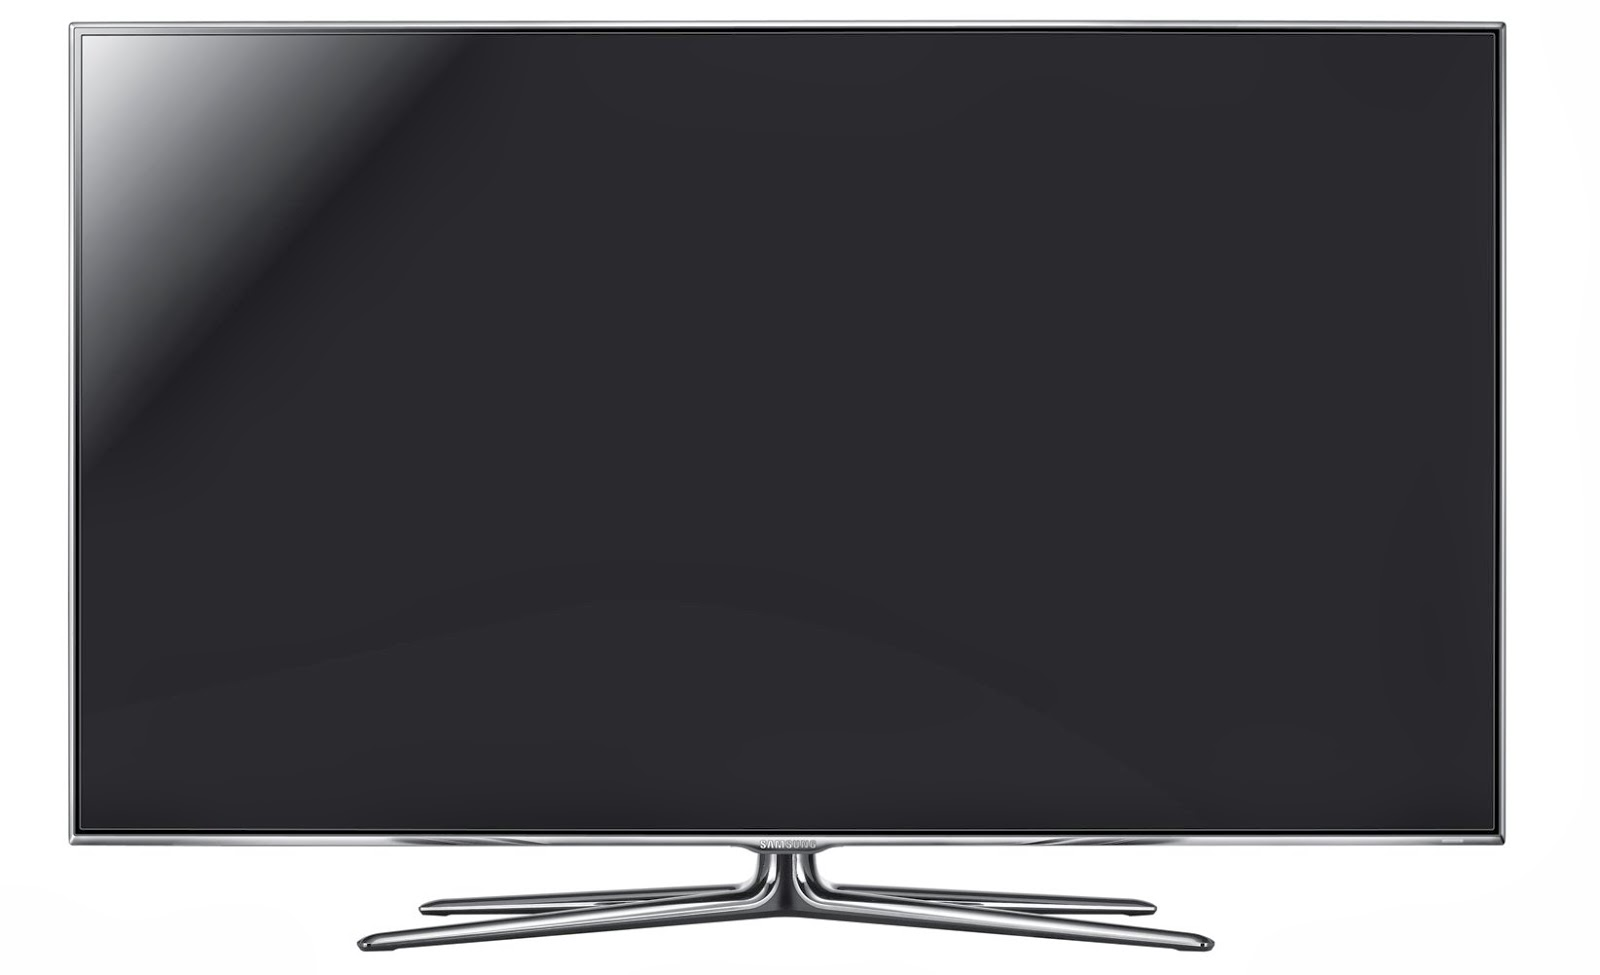 Television clipart lcd tv. Inspirational design ideas icon